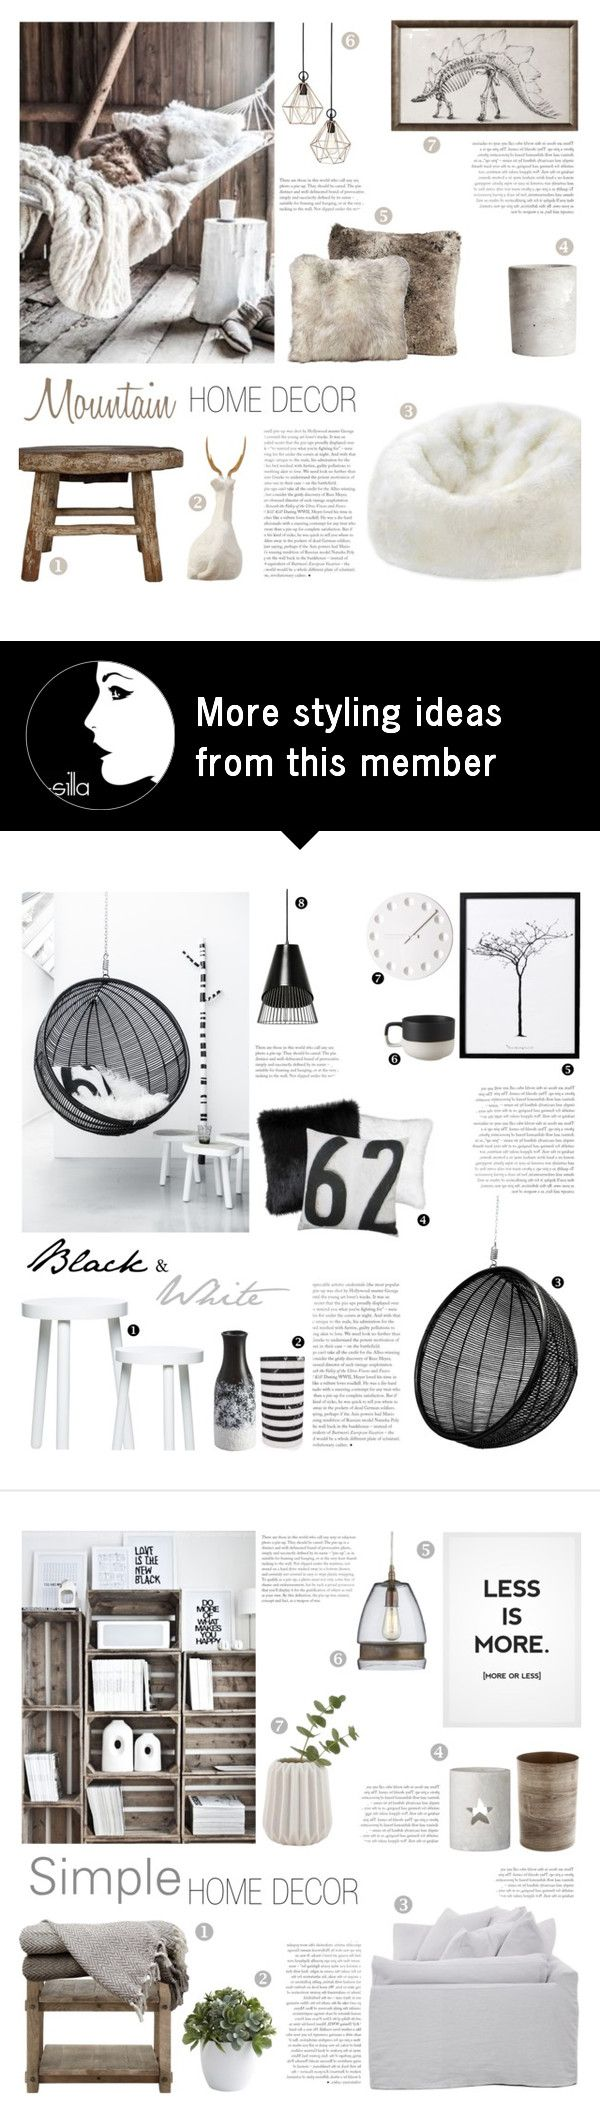 Mountain Home Decor By C Silla On Polyvore Featuring Interior Interiors